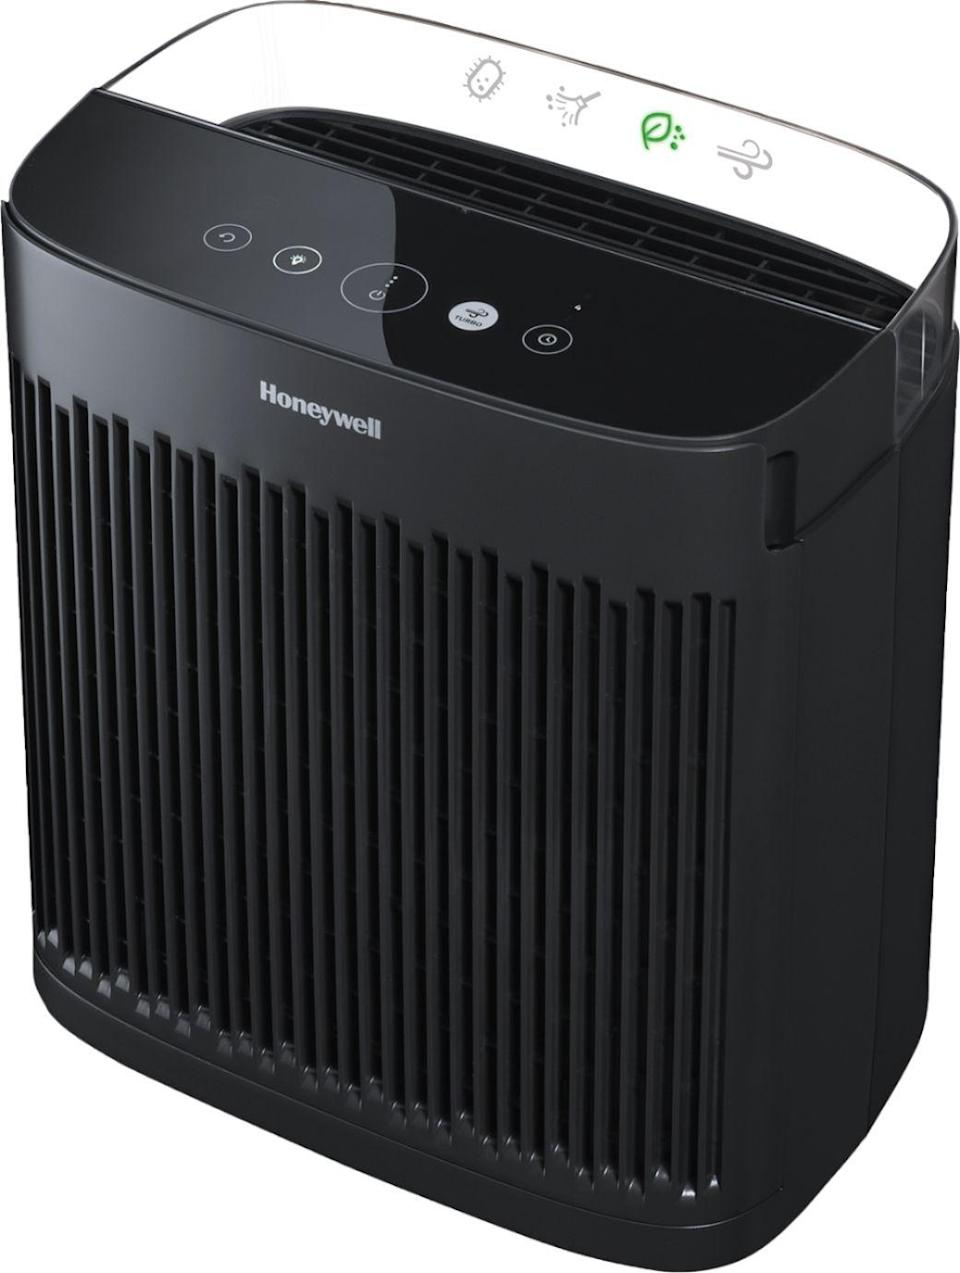 """<p><strong>Honeywell</strong></p><p>bestbuy.com</p><p><strong>$159.99</strong></p><p><a href=""""https://go.redirectingat.com?id=74968X1596630&url=https%3A%2F%2Fwww.bestbuy.com%2Fsite%2Fhoneywell-insighttm-hpa5100b-175-sq-ft-hepa-air-purifier-black-black%2F6412406.p%3FskuId%3D6412406&sref=https%3A%2F%2Fwww.veranda.com%2Fshopping%2Fhome-accessories%2Fg35025412%2Fair-purifiers%2F"""" rel=""""nofollow noopener"""" target=""""_blank"""" data-ylk=""""slk:Shop Now"""" class=""""link rapid-noclick-resp"""">Shop Now</a></p><p>Honeywell's purifier has been certified by the <a href=""""https://www.aham.org/"""" rel=""""nofollow noopener"""" target=""""_blank"""" data-ylk=""""slk:Association of Home Appliance Manufacturers"""" class=""""link rapid-noclick-resp"""">Association of Home Appliance Manufacturers</a> to filter room air up to five times per hour in spaces up to 175 square feet. Its slender proportions (17.68 inches high by 16.18 inches long by 11.26 inches wide) make it easy to work into any room scheme, while four cleaning levels (germ, allergen, general clean, and turbo) allow for customizable usage.</p>"""